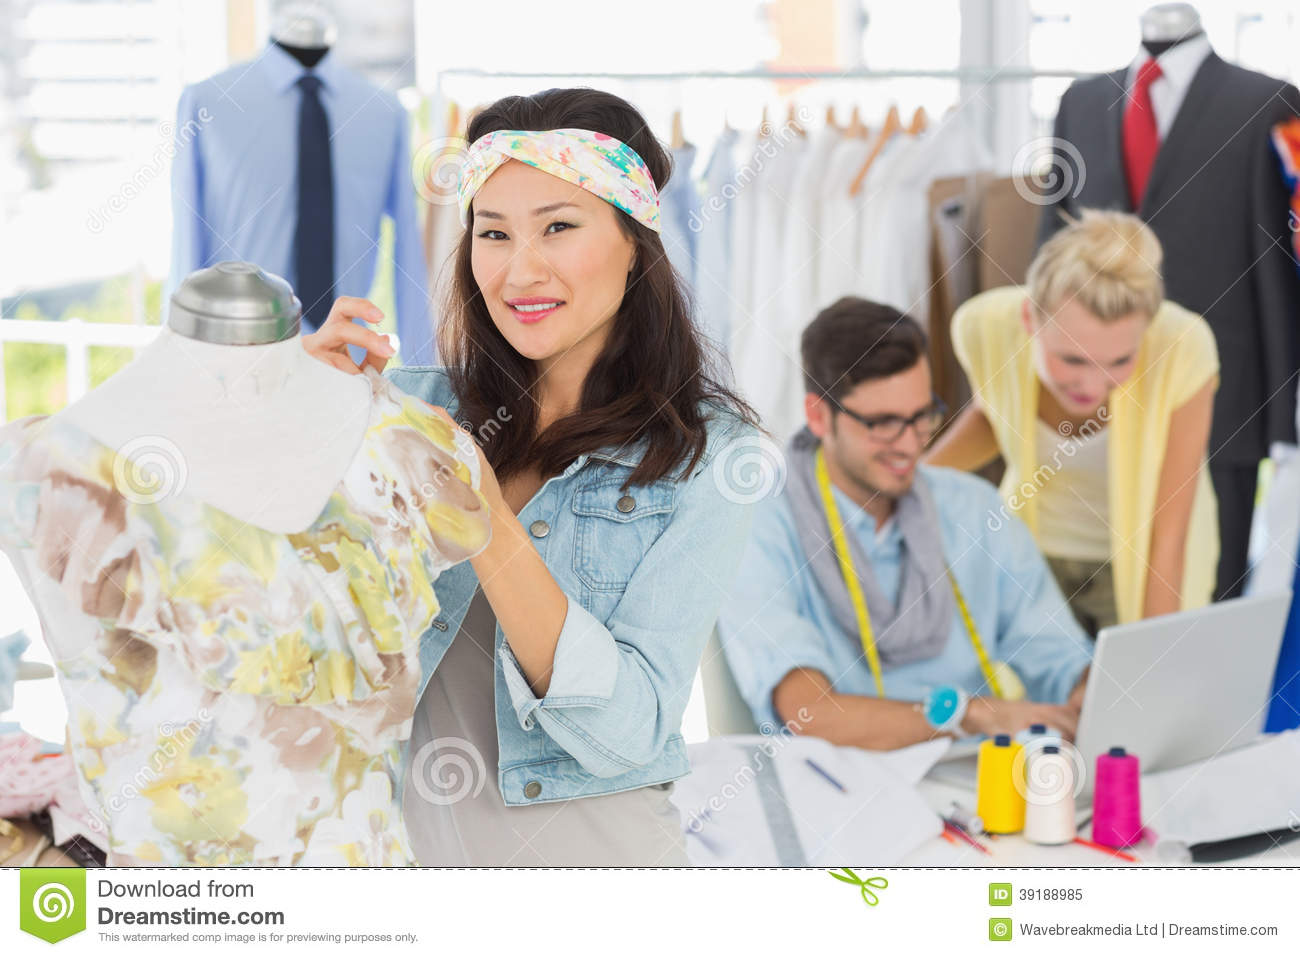 Fashion Designers At Work Stock Photo Image 39188985